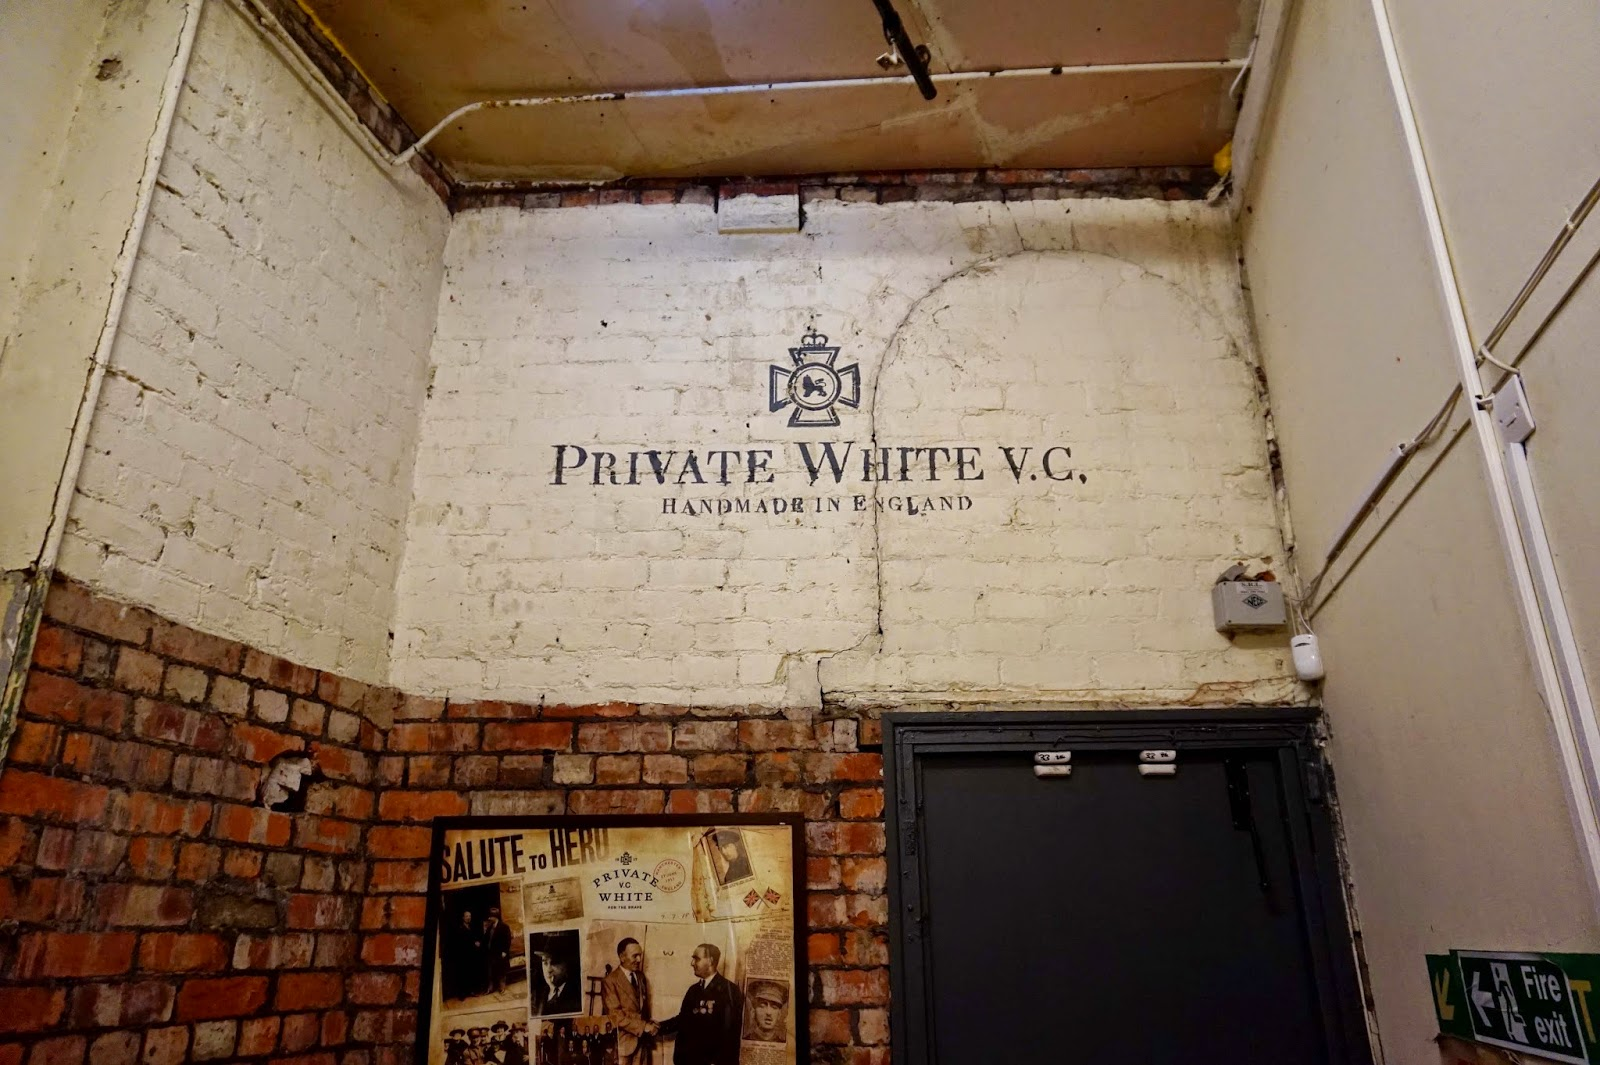 Made in England Private White V.C